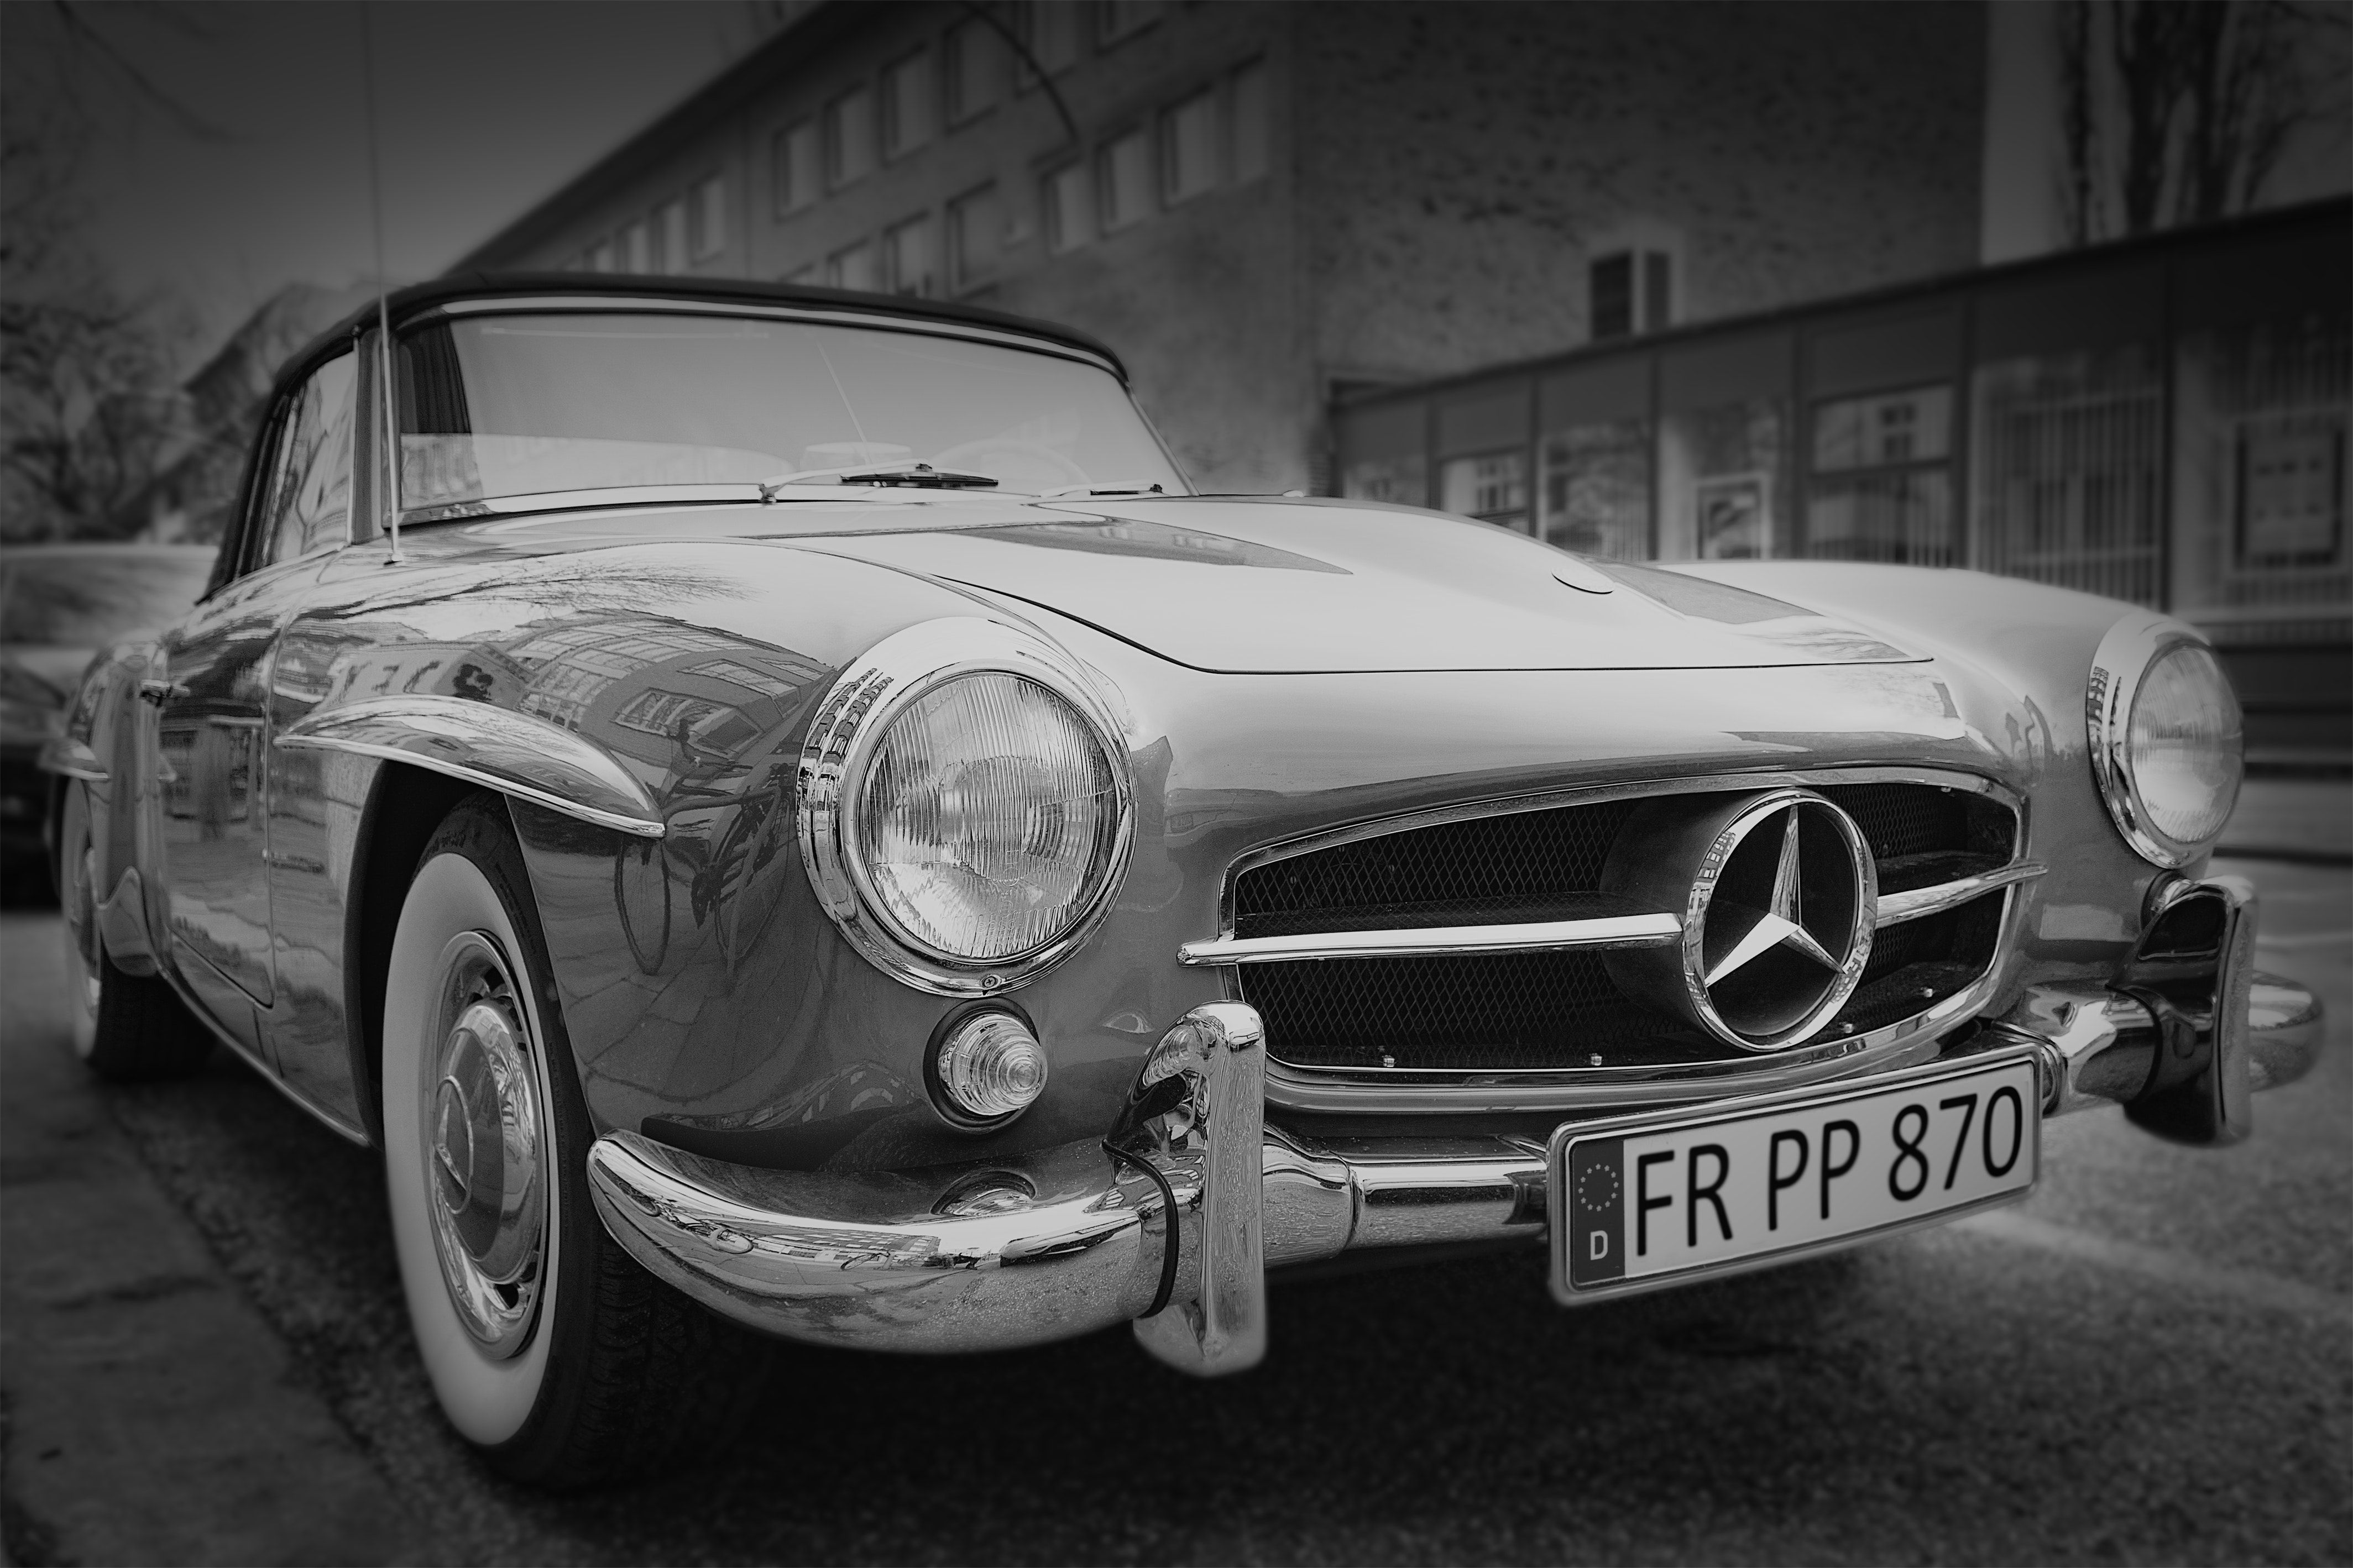 How to photograph vintage cars